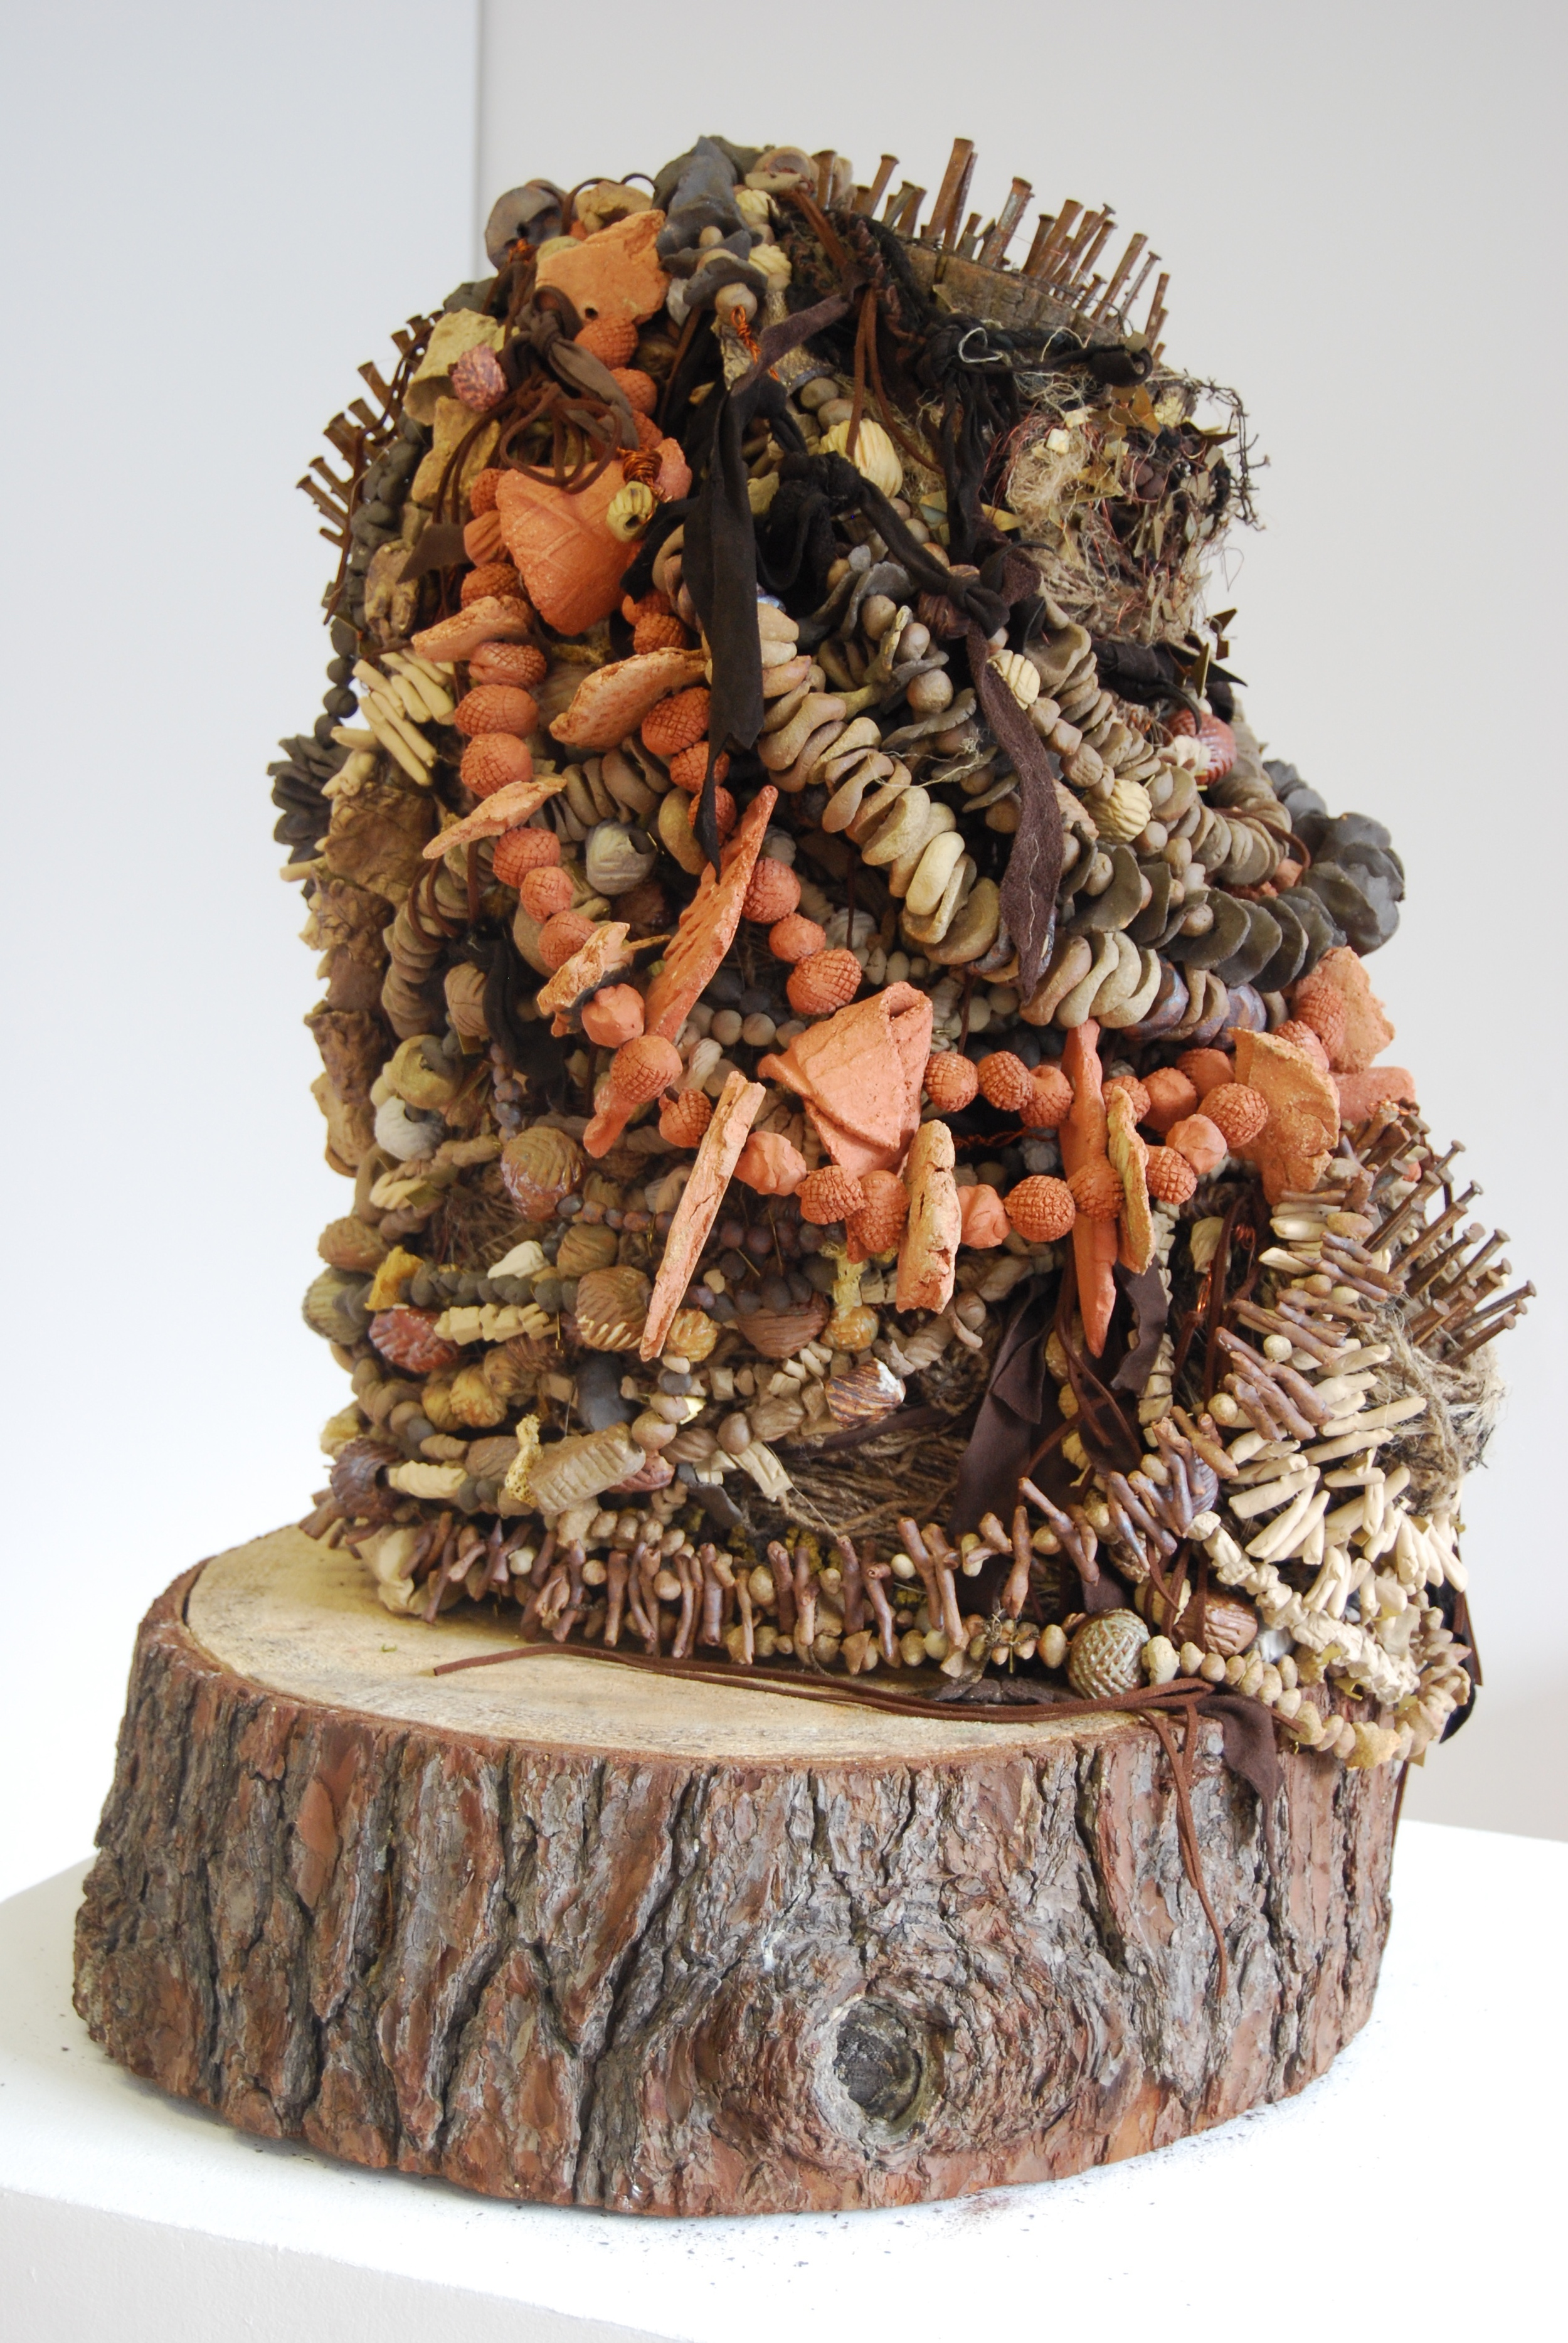 """The Offering III"" "" Ceramic mixed media sculpture by Shelita Birchett Benash, 2015."